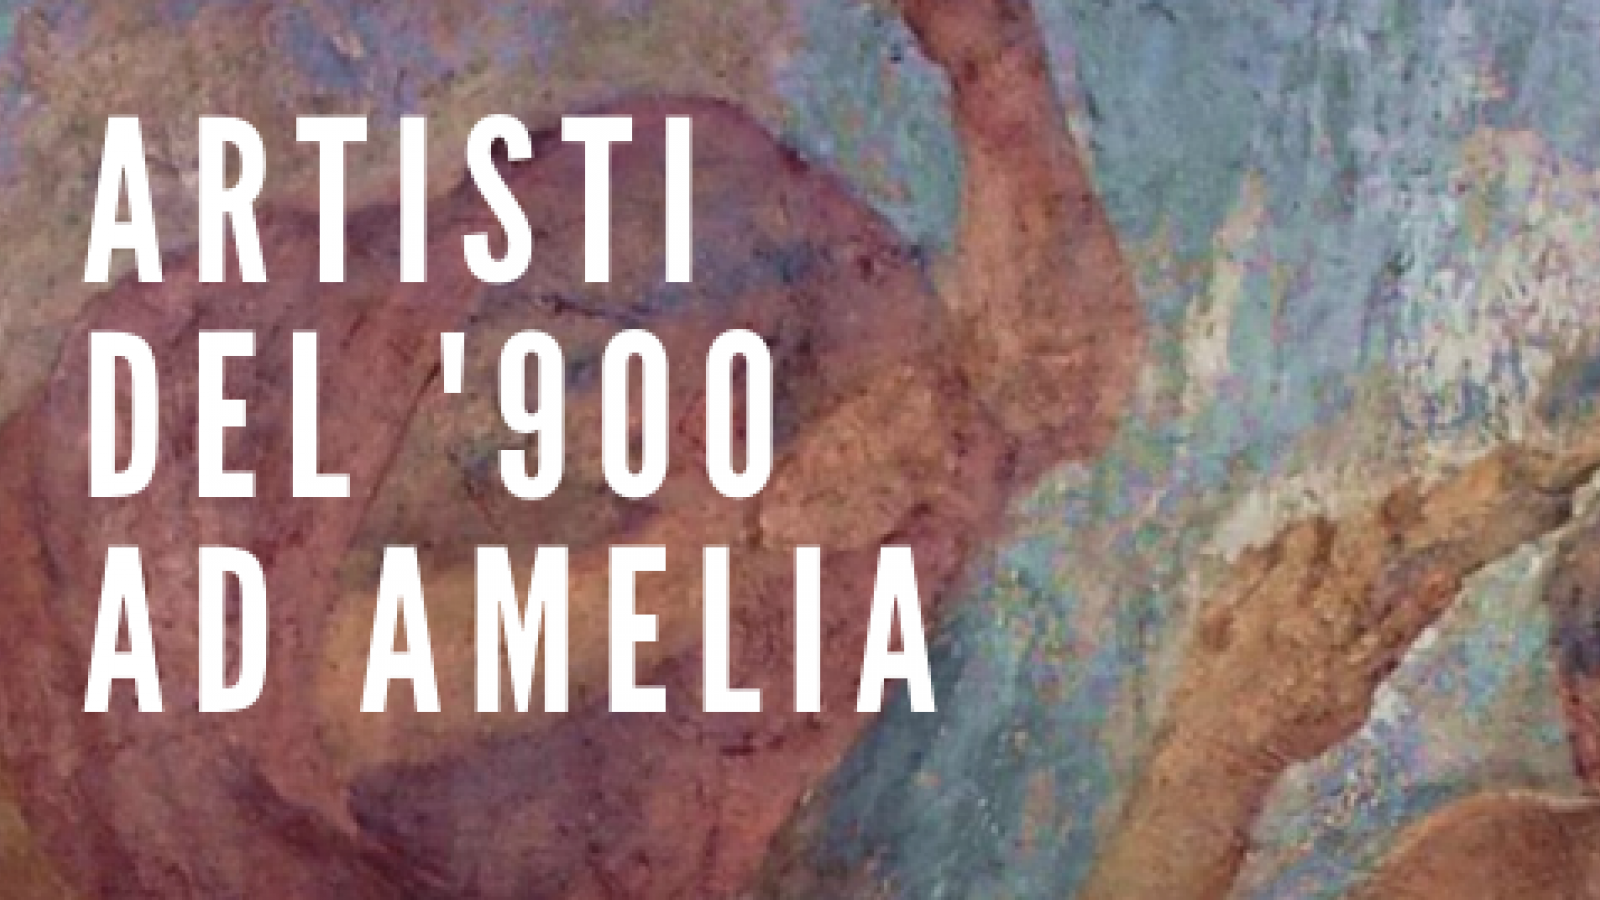 ARTISTS OF THE '900 IN AMELIA